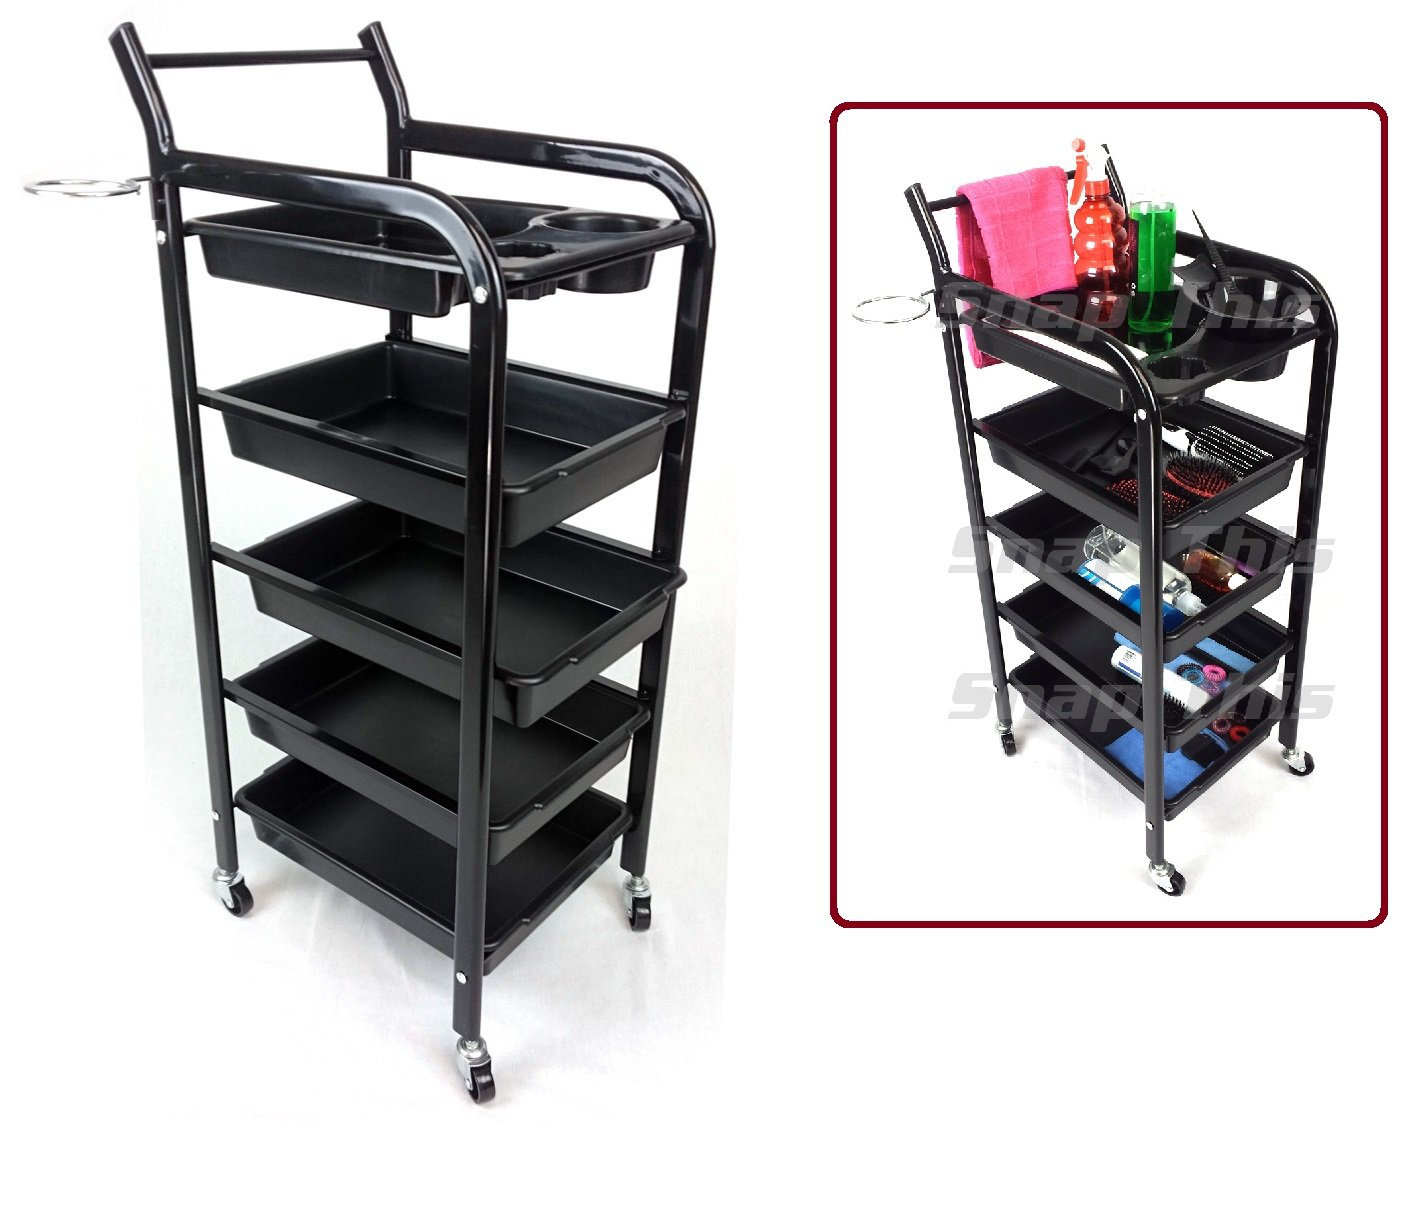 TekNoh 4S - Salon Storage Trolley - (High Gloss Black Finish) - Hairdresser Barber Hair Beauty Drawers Spa Cart T4S